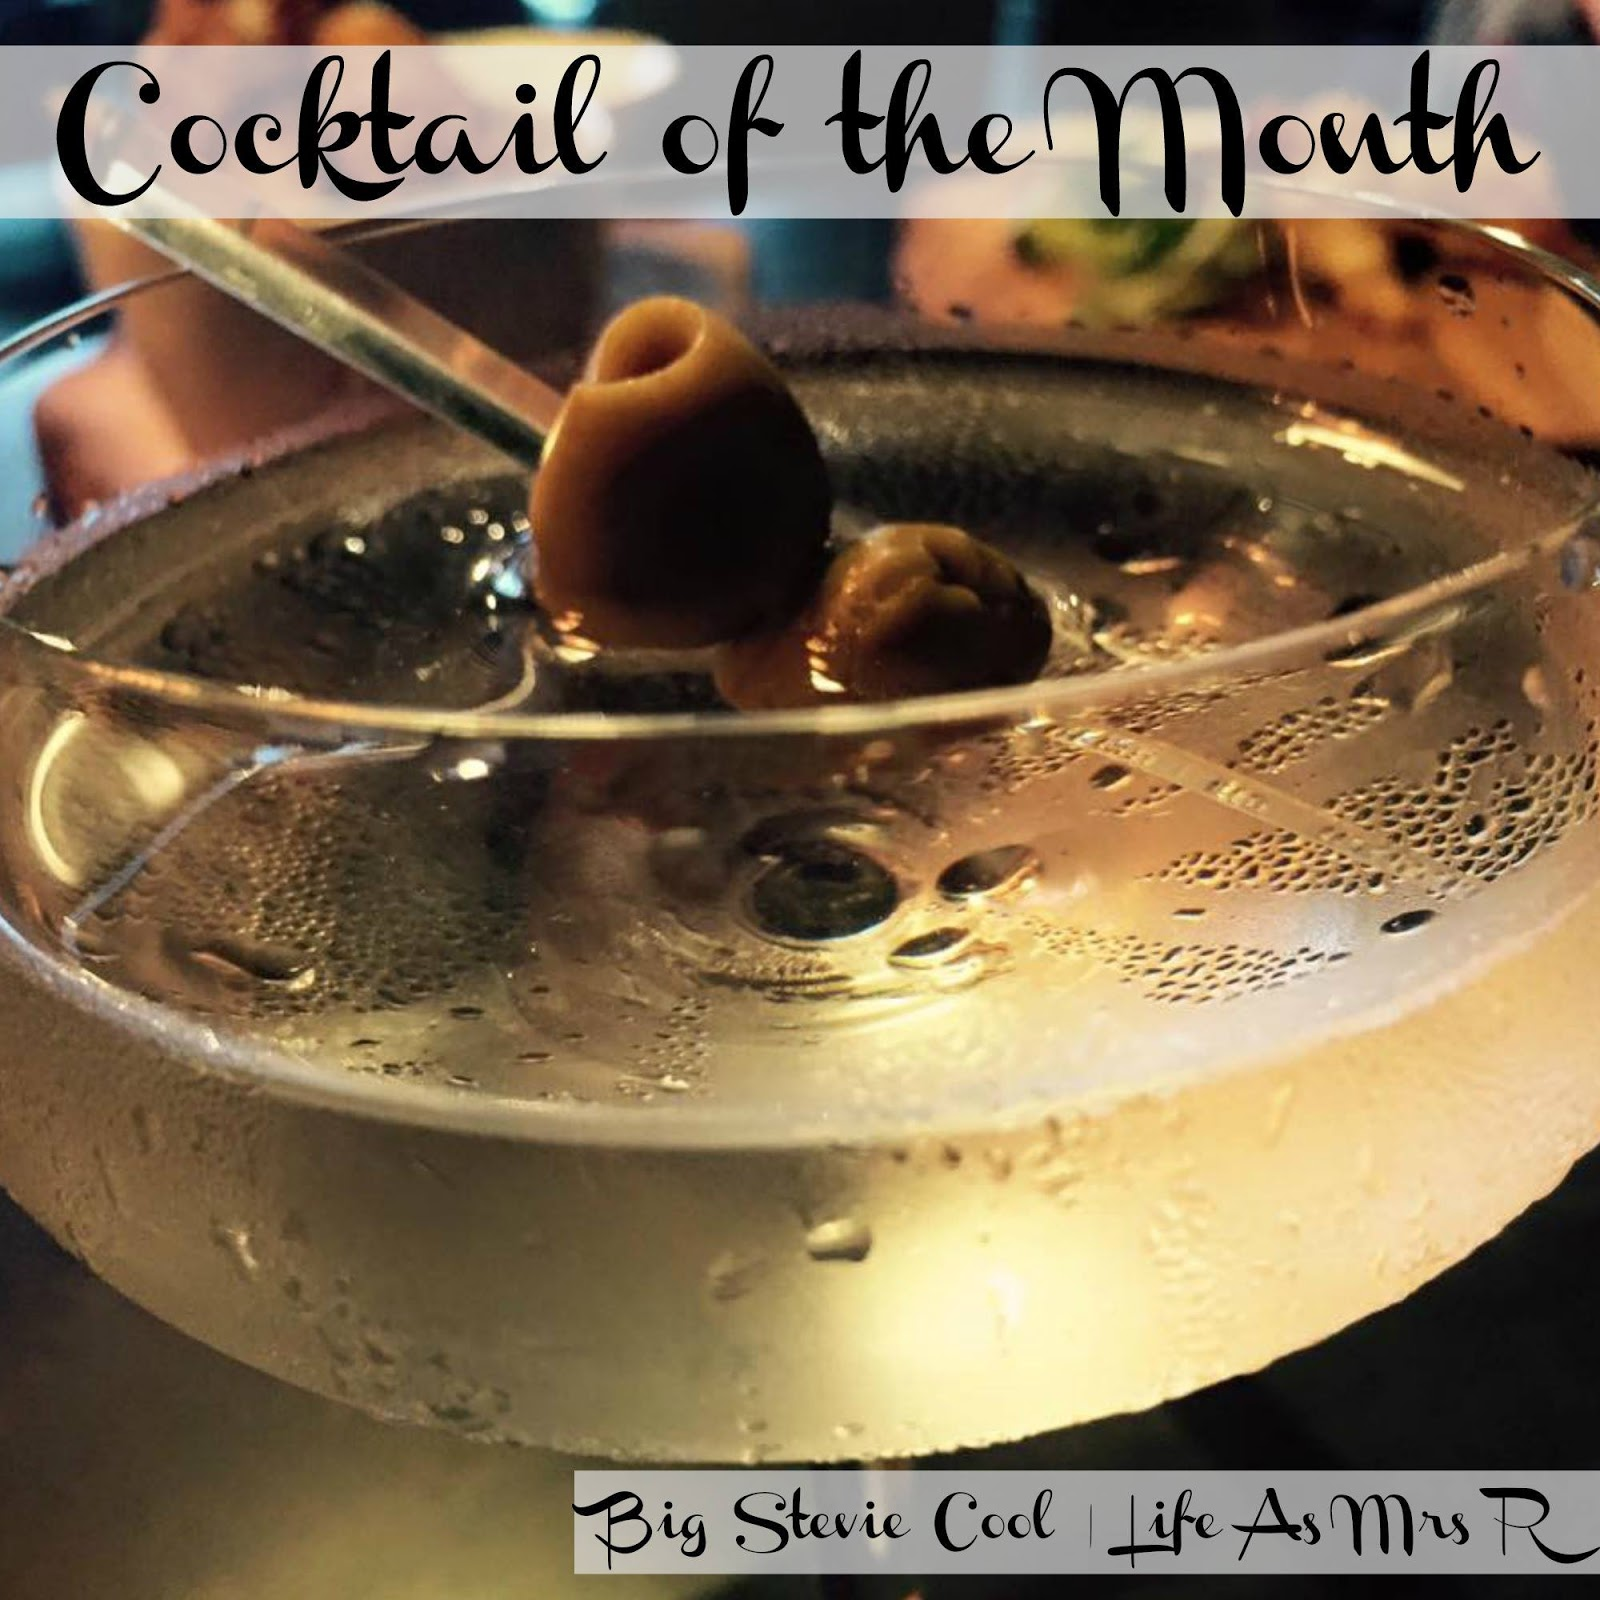 Cocktail of the month recipe | Mojito